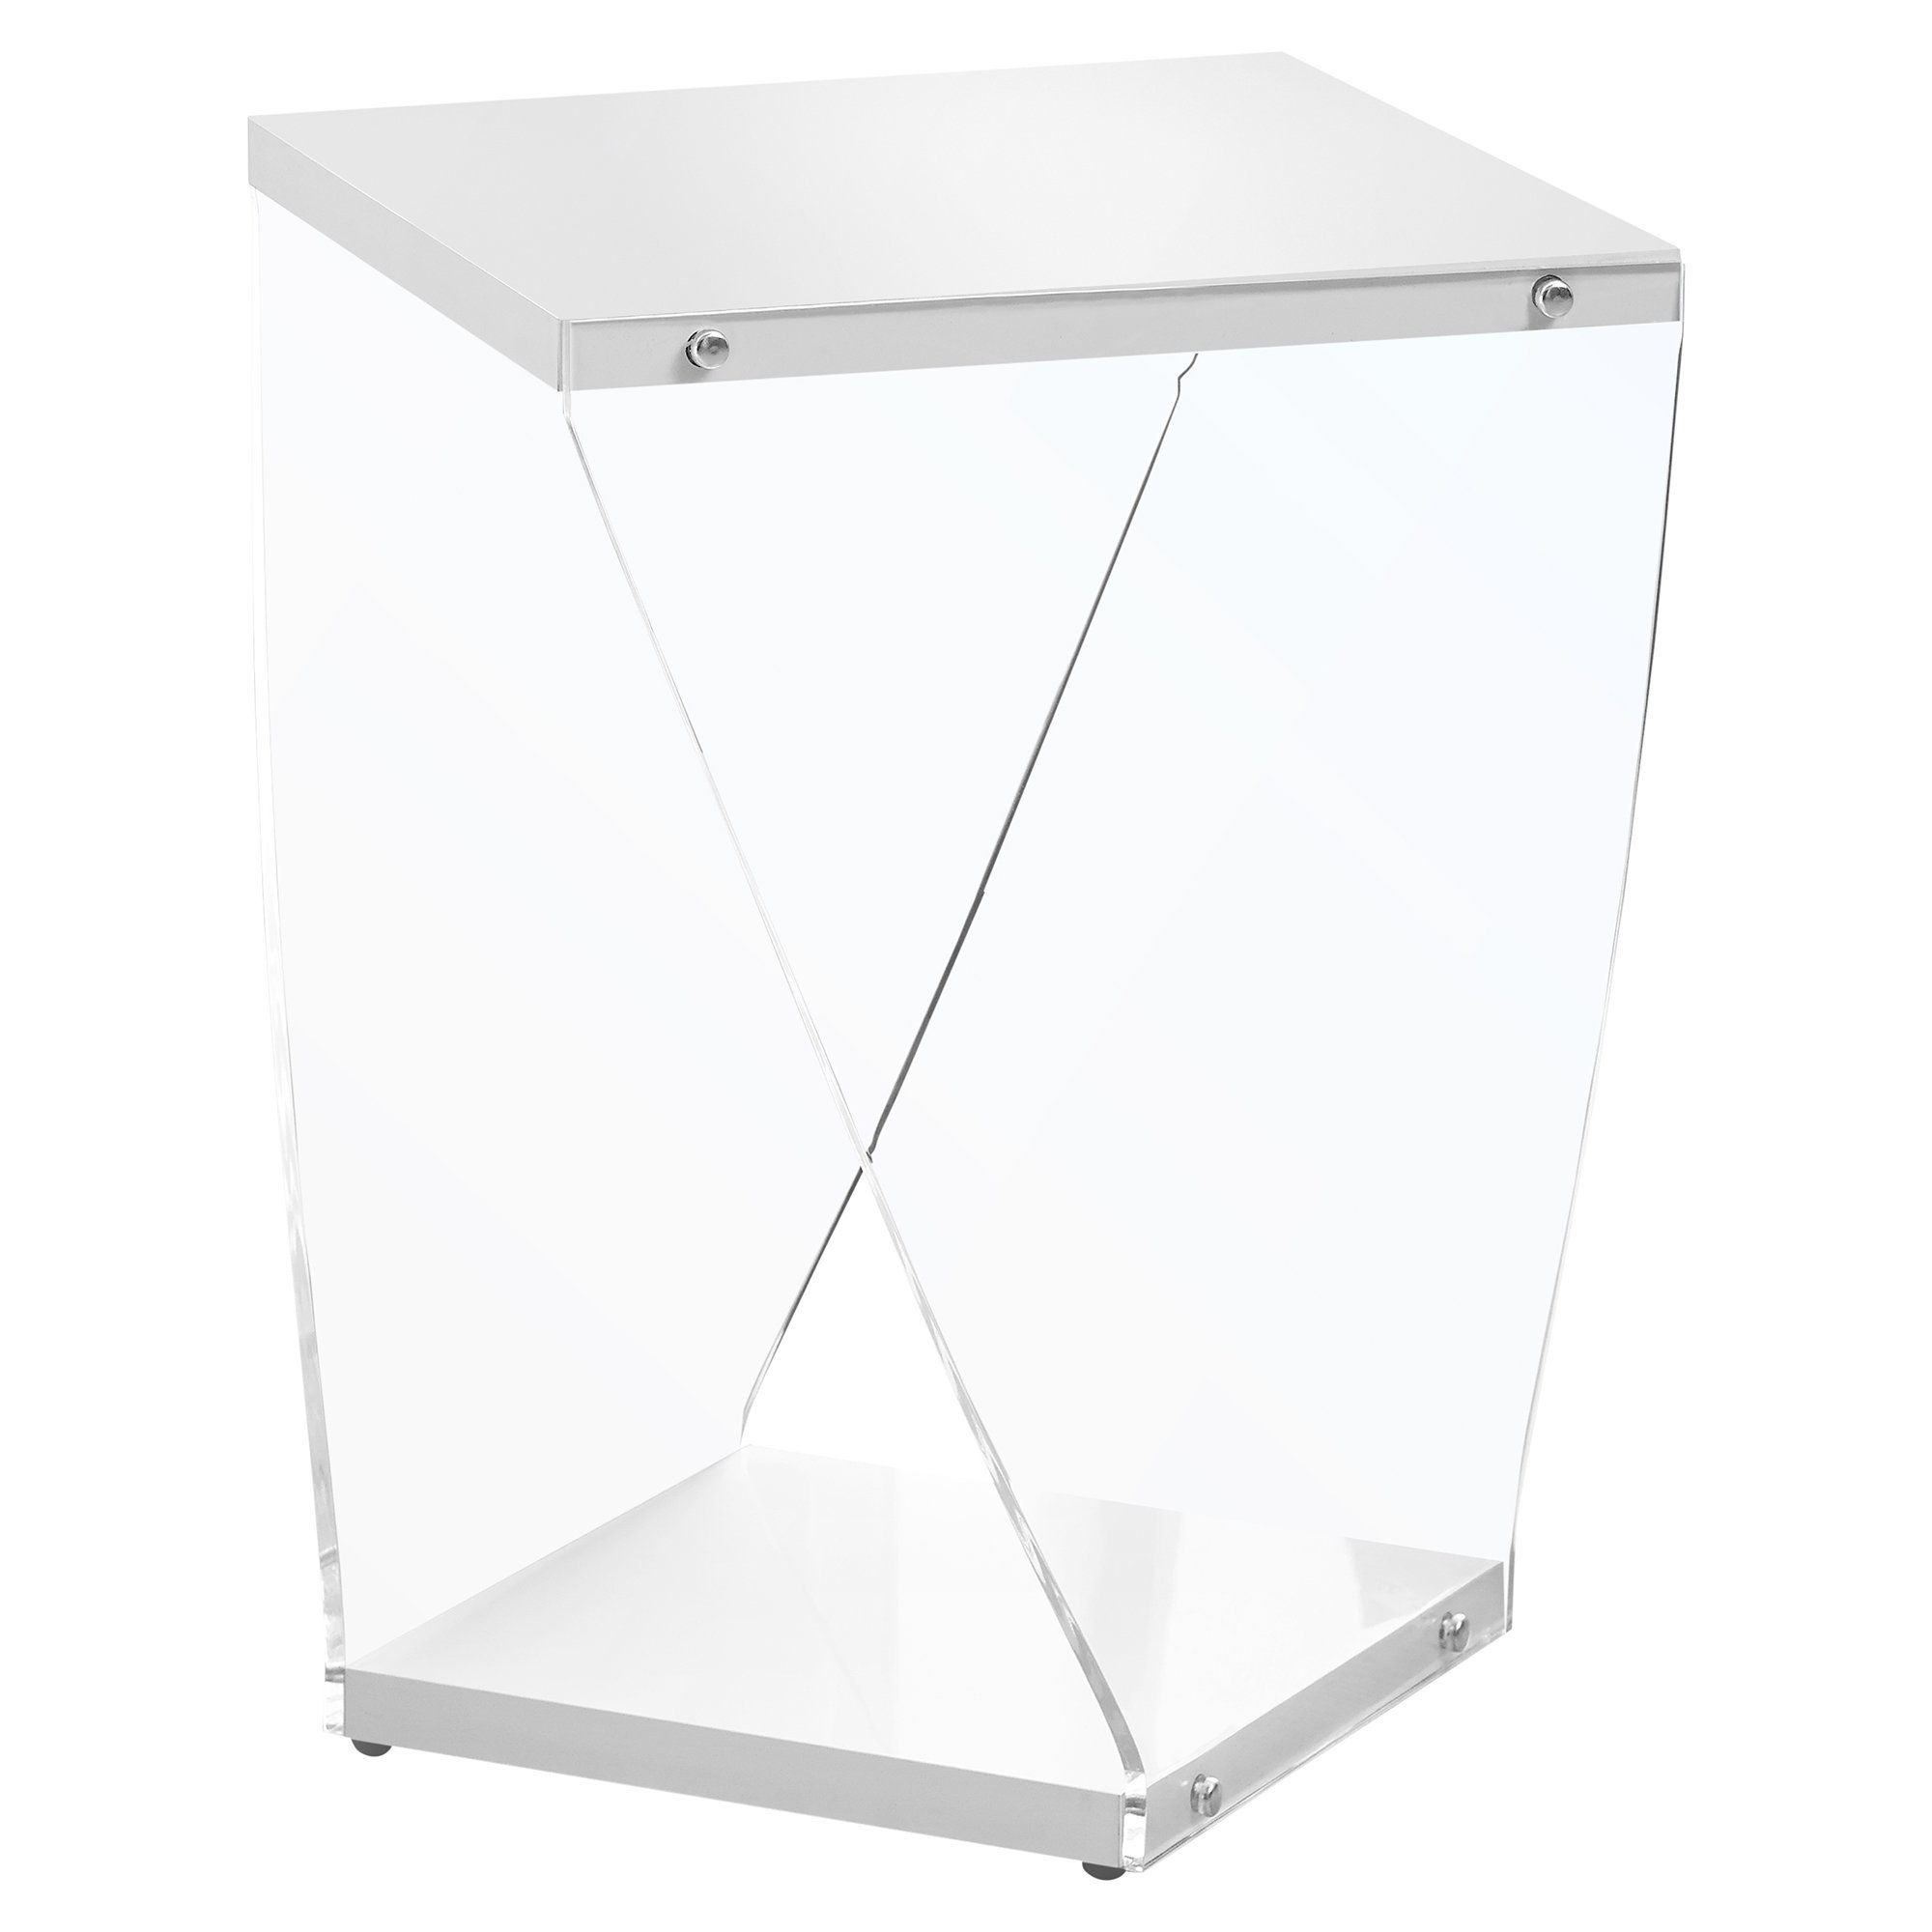 monarch mdf and acrylic accent table white clear finish furniture wellington garden chairs set ashley wood stump small patio plastic outdoor folding side porcelain vase lamp